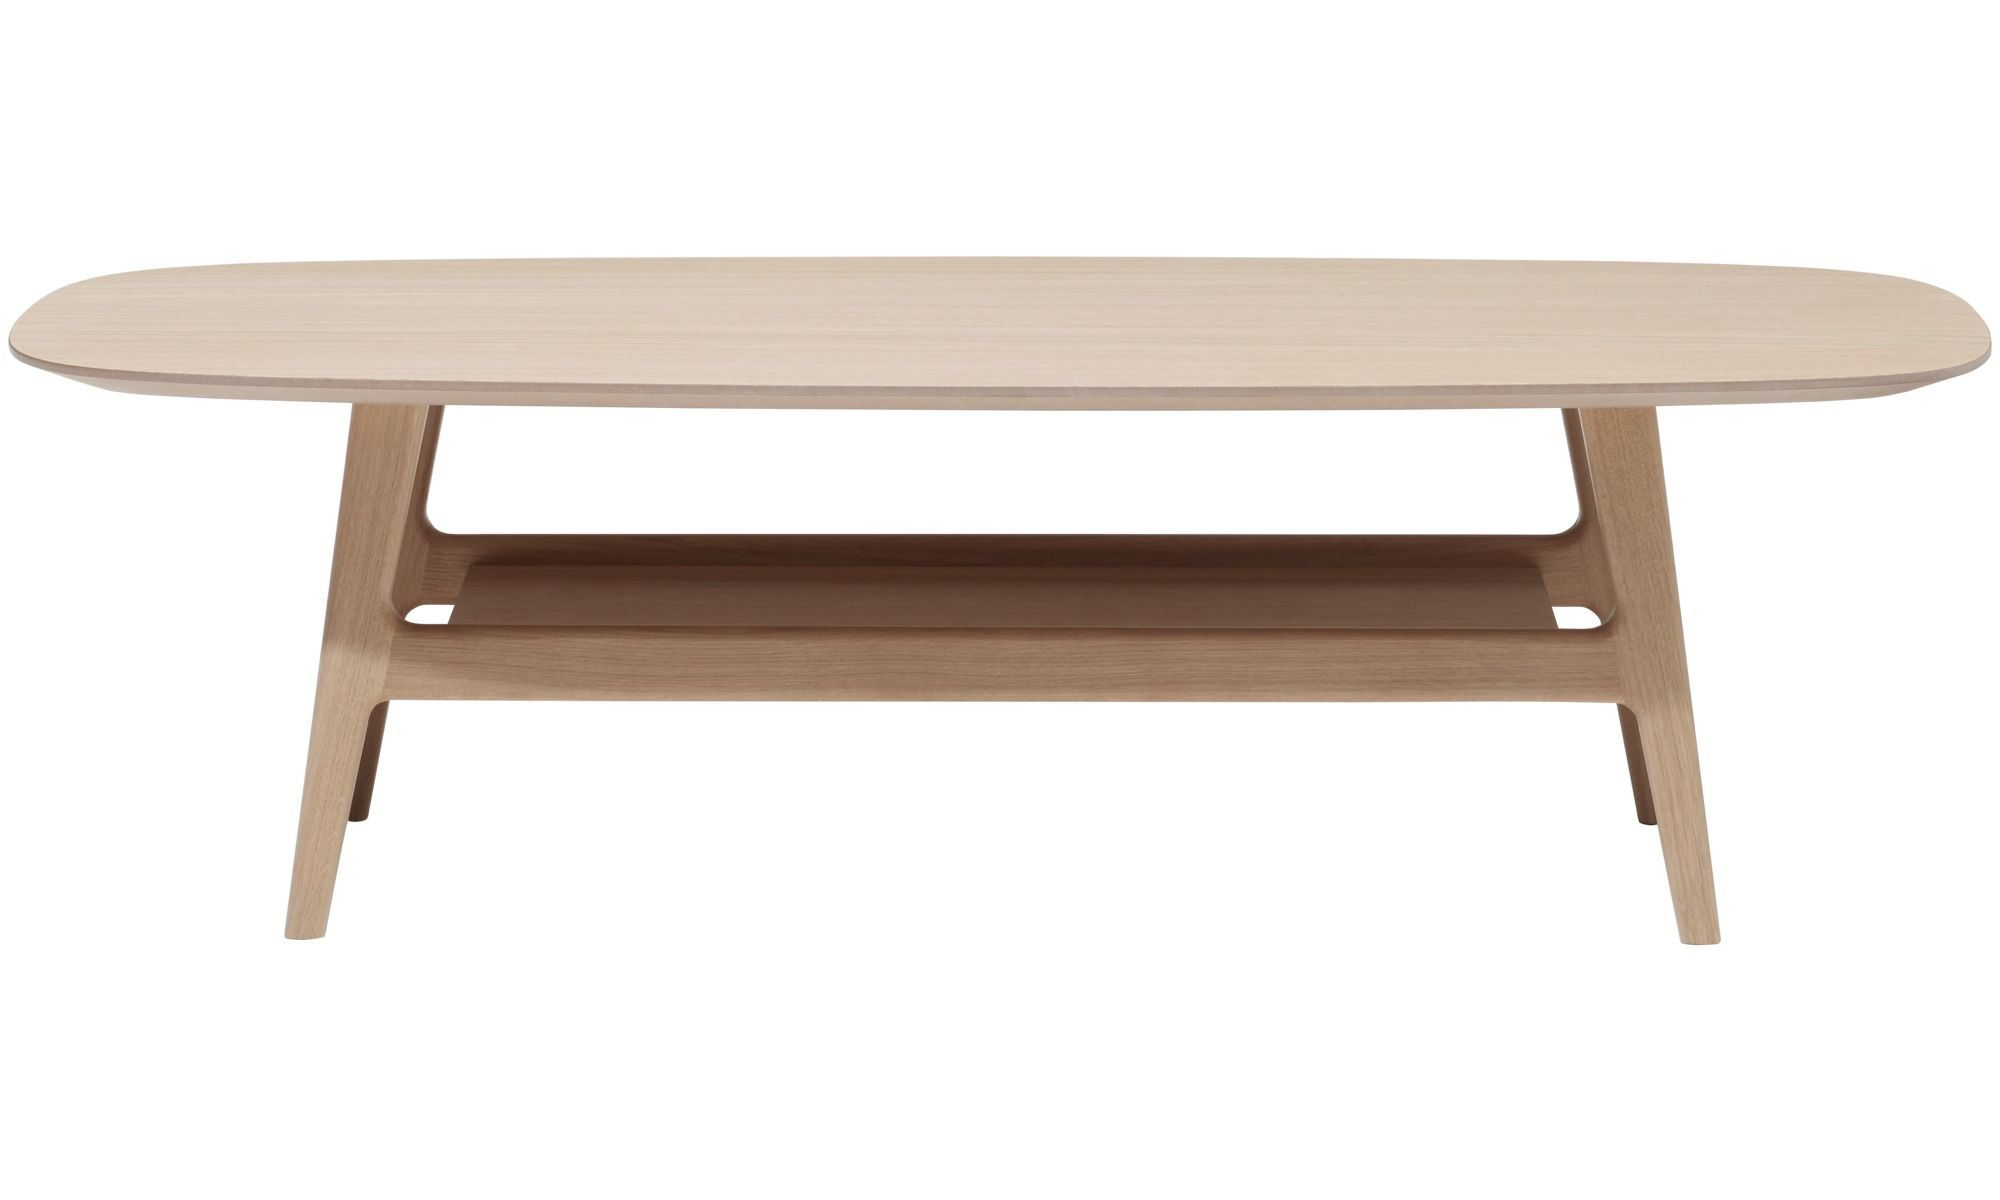 Resultat De Recherche D Images Pour Bo Concept Table Basse With Images Coffee Table Coffee Table Design Modern Coffee Tables